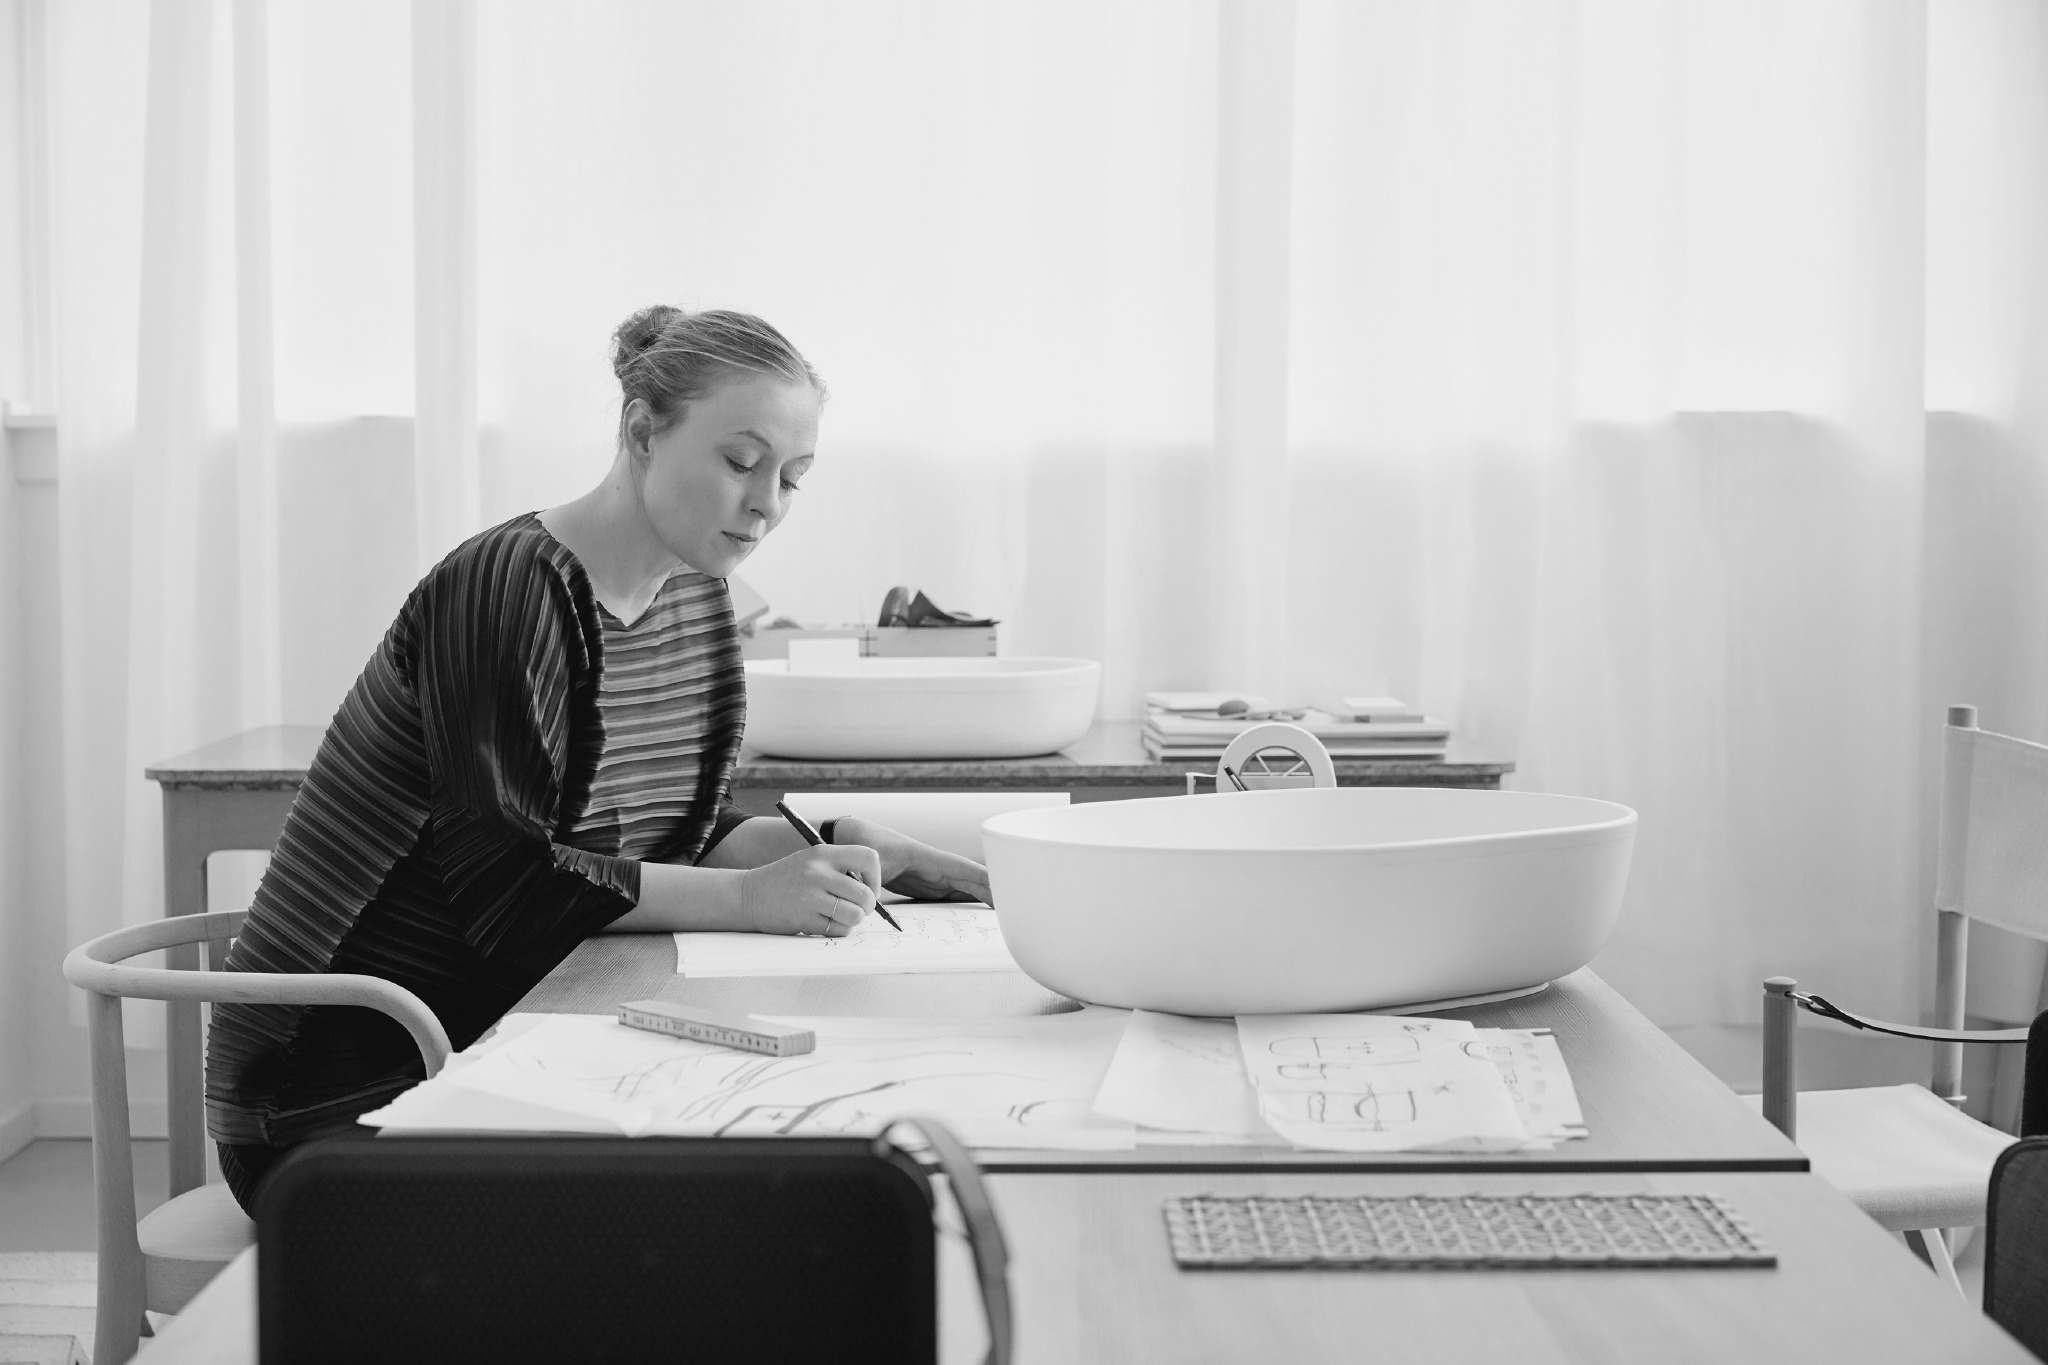 Greet Cecilie Manz The Designer of The Year 2018! 5 designer of the year 2018 Greet Cecilie Manz: The Designer of The Year 2018! Greet Cecilie Manz The Designer of The Year 2018 5